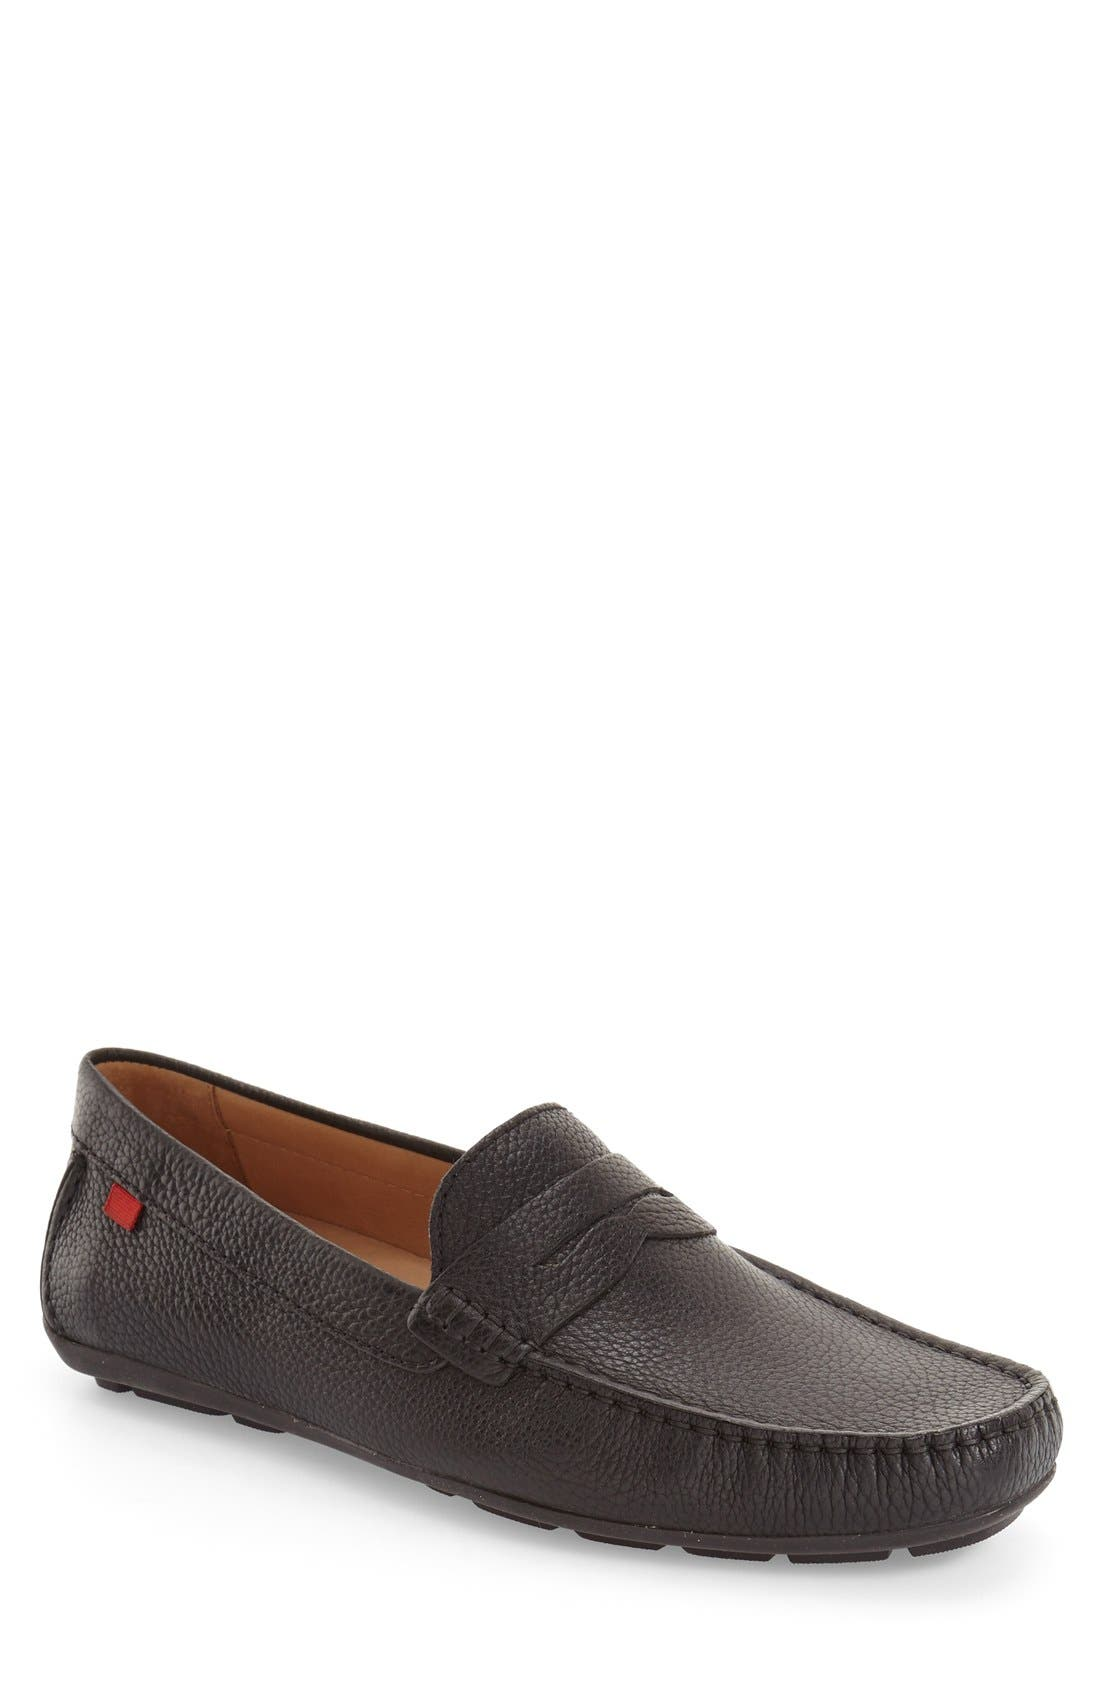 'Union Street' Penny Loafer,                         Main,                         color,